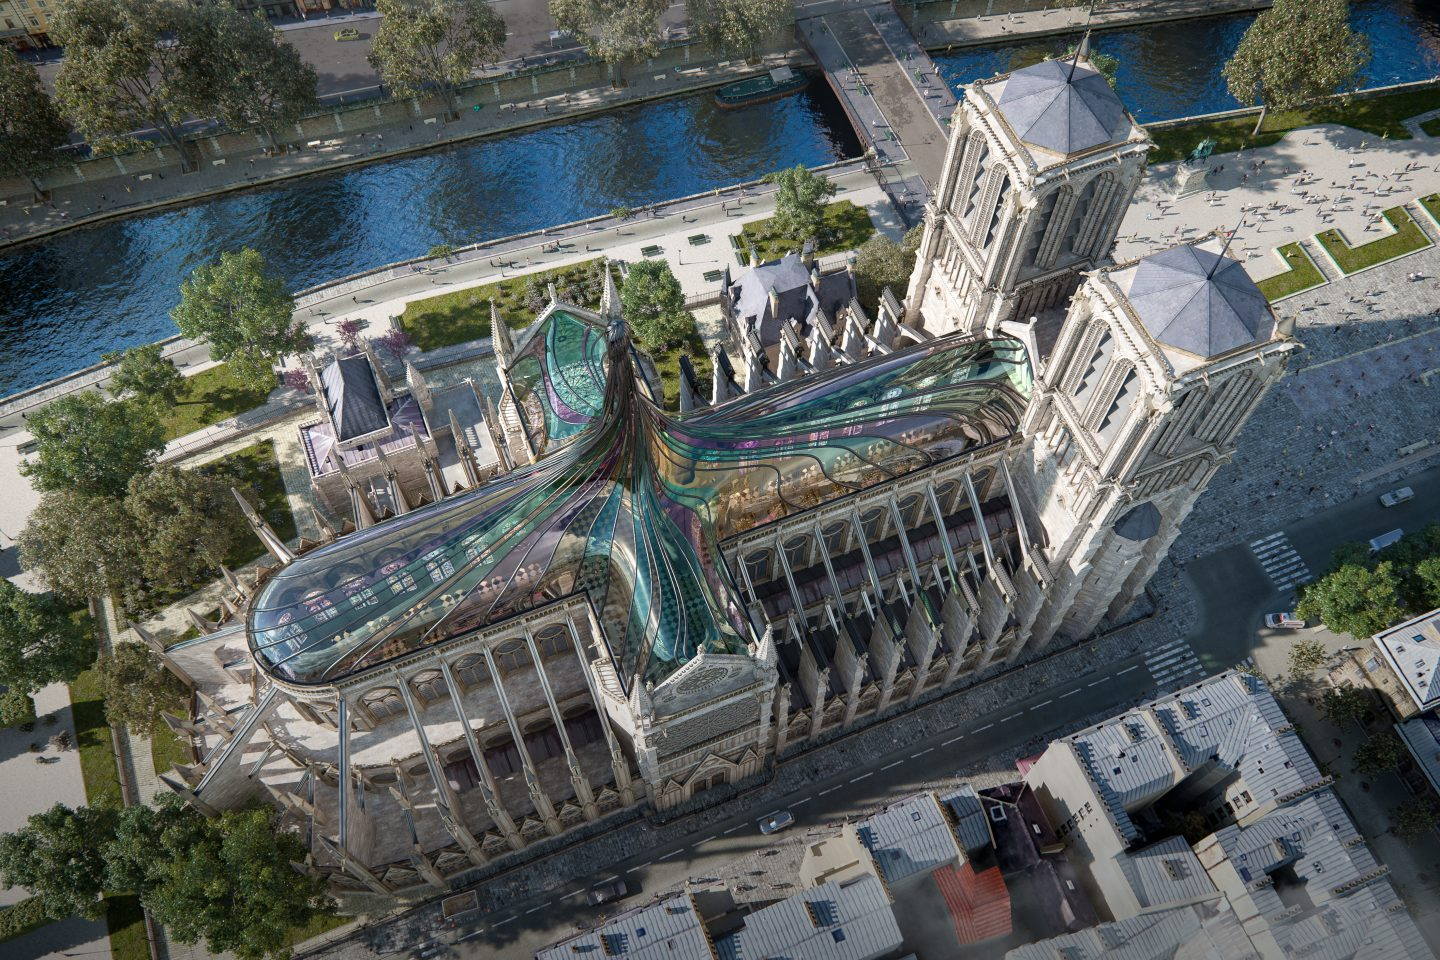 cattedrale notre dame 3d rendering